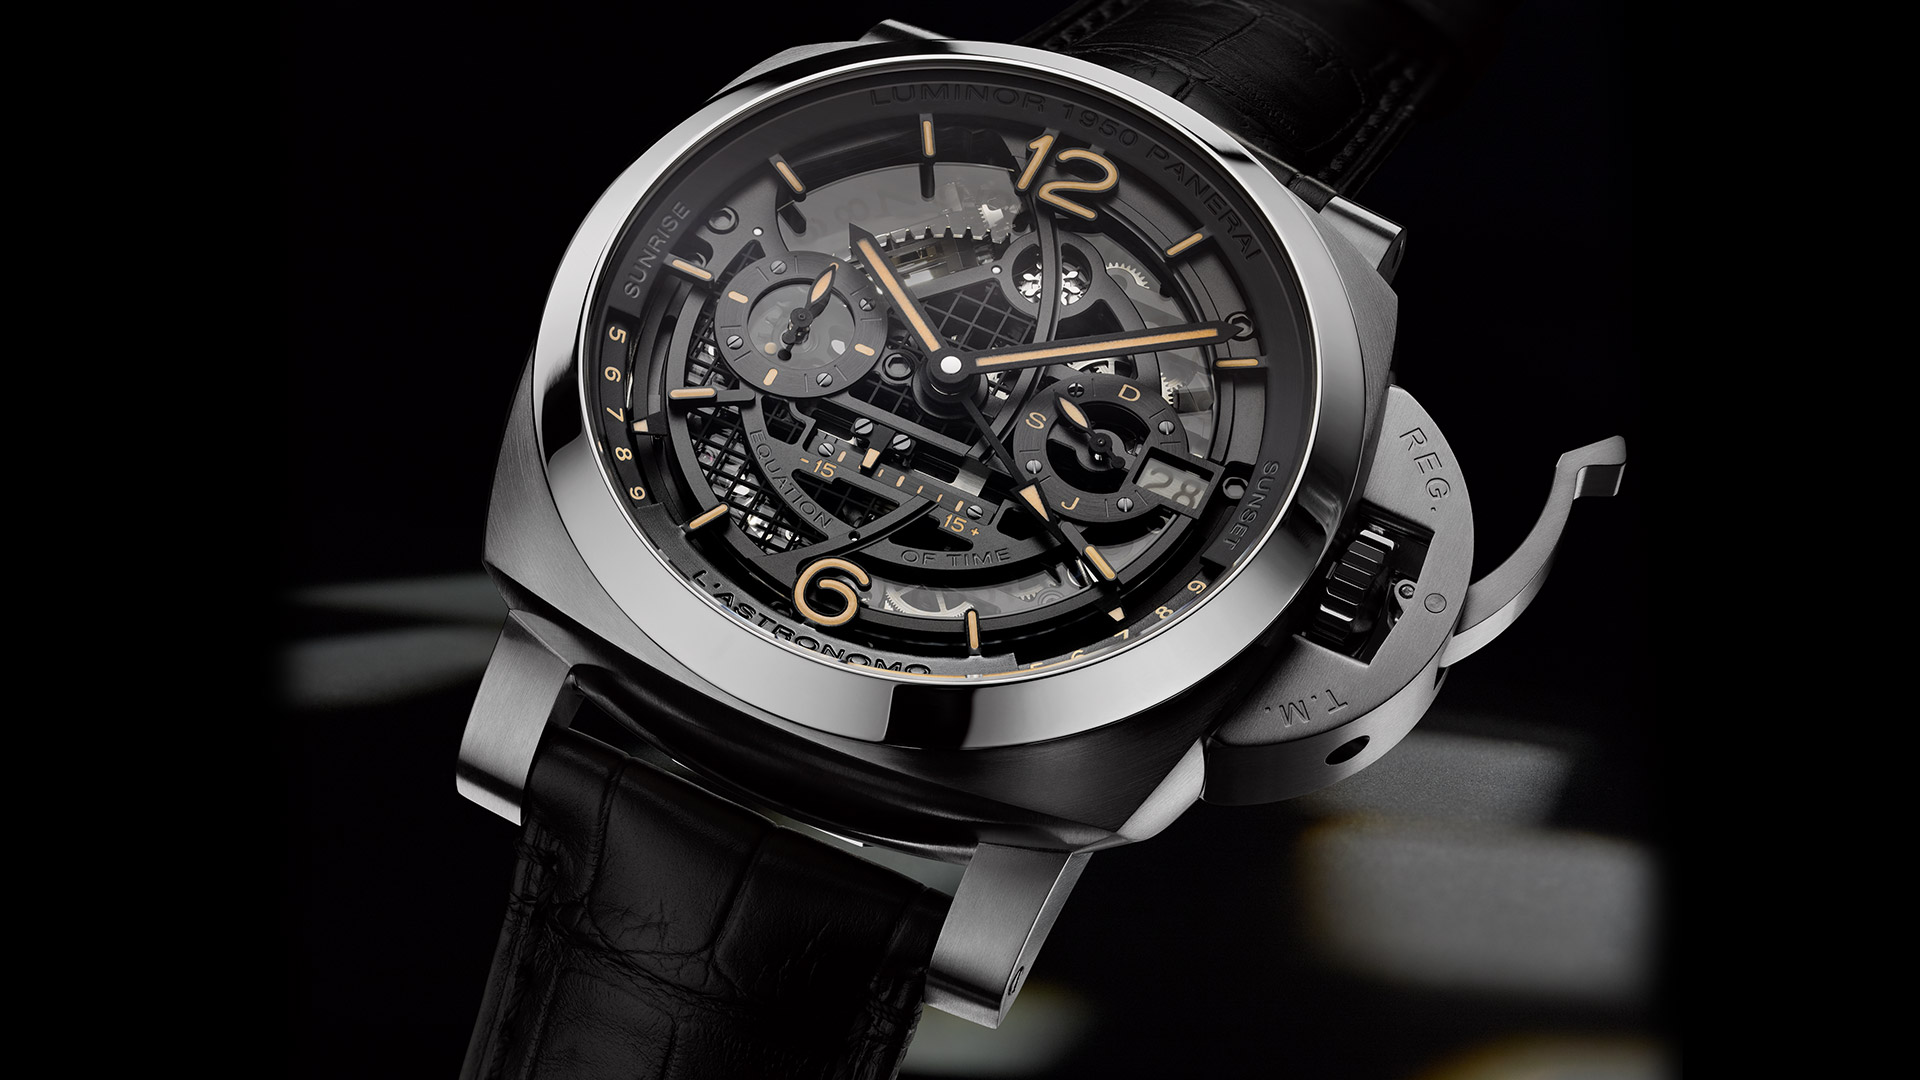 Risultati immagini per The Panerai L'Astronomo Luminor 1950 Tourbillon Moon Phases Equation of Time GMT is a fully customizable, made-to-order masterpiece FOTO